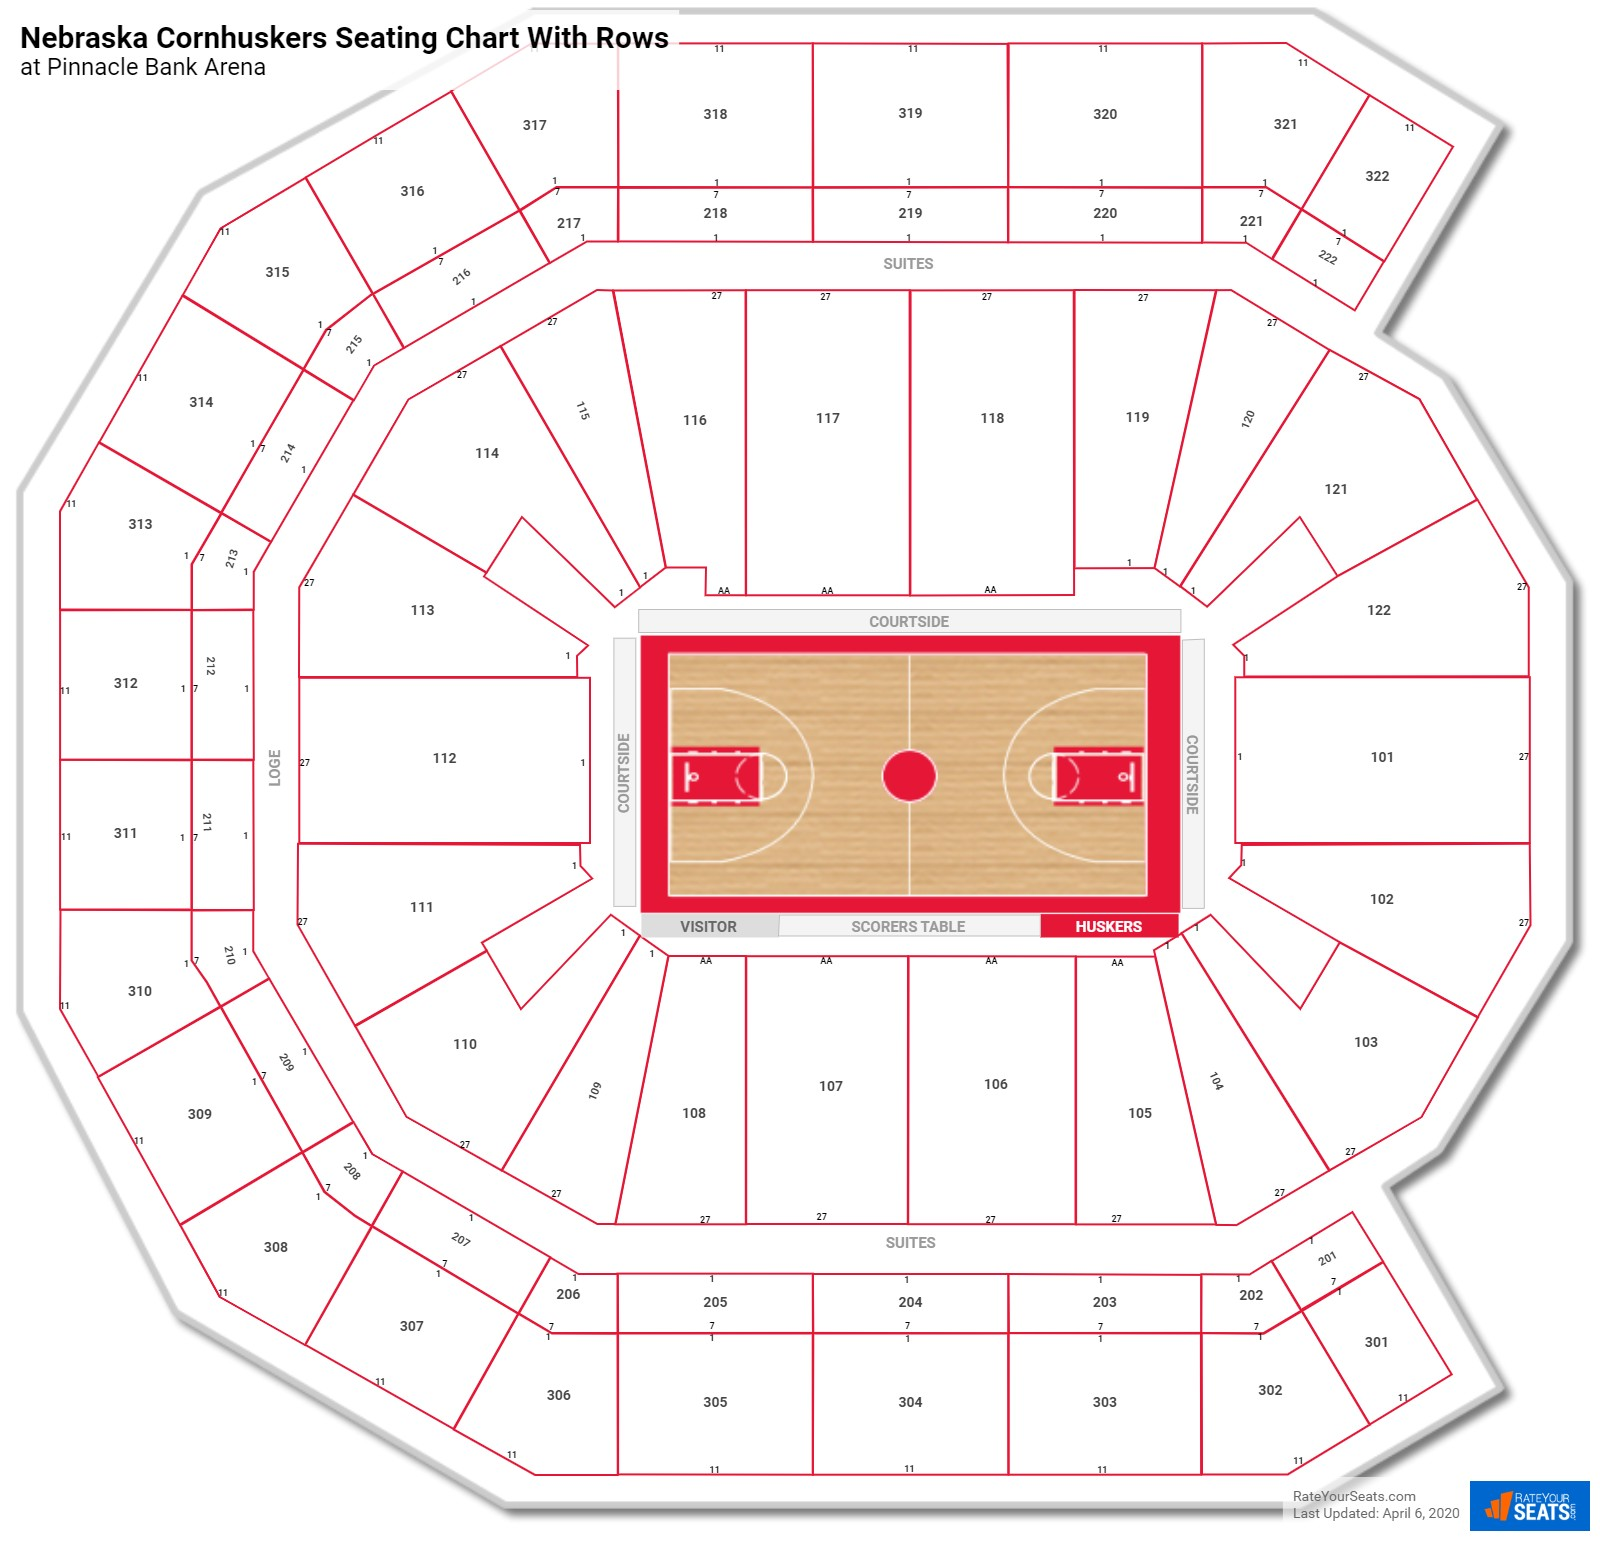 Pinnacle Bank Arena seating chart with rows basketball